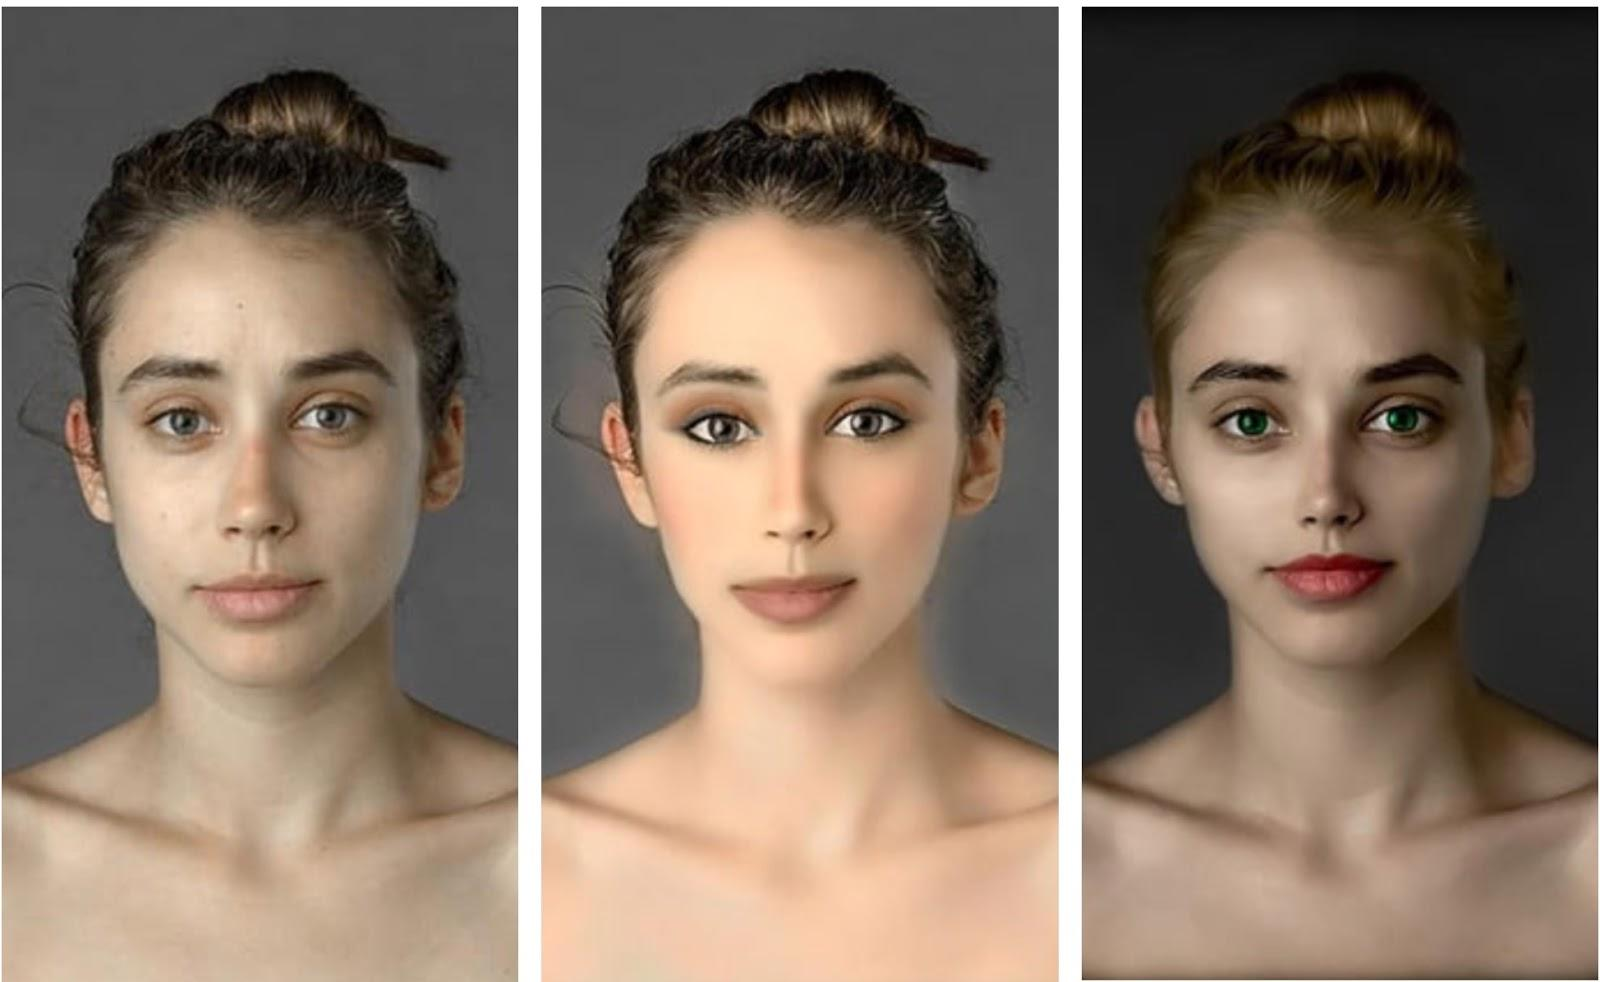 photo retouching examples for digital face modification